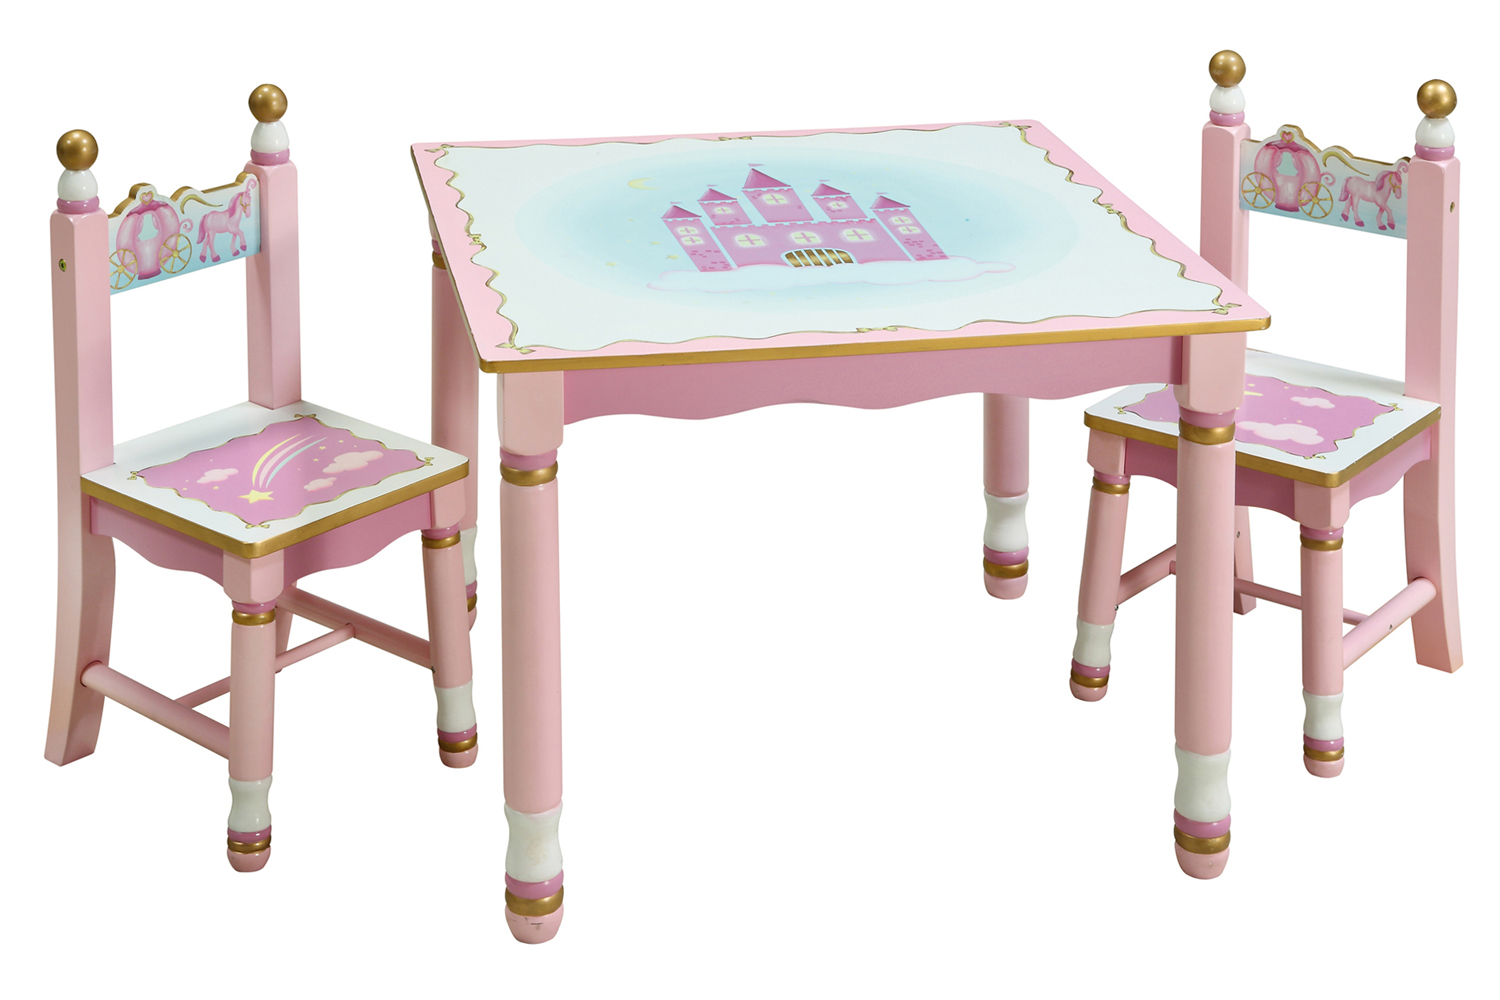 Guidecraft preschool princess girl kids pink play table for Table and chair set